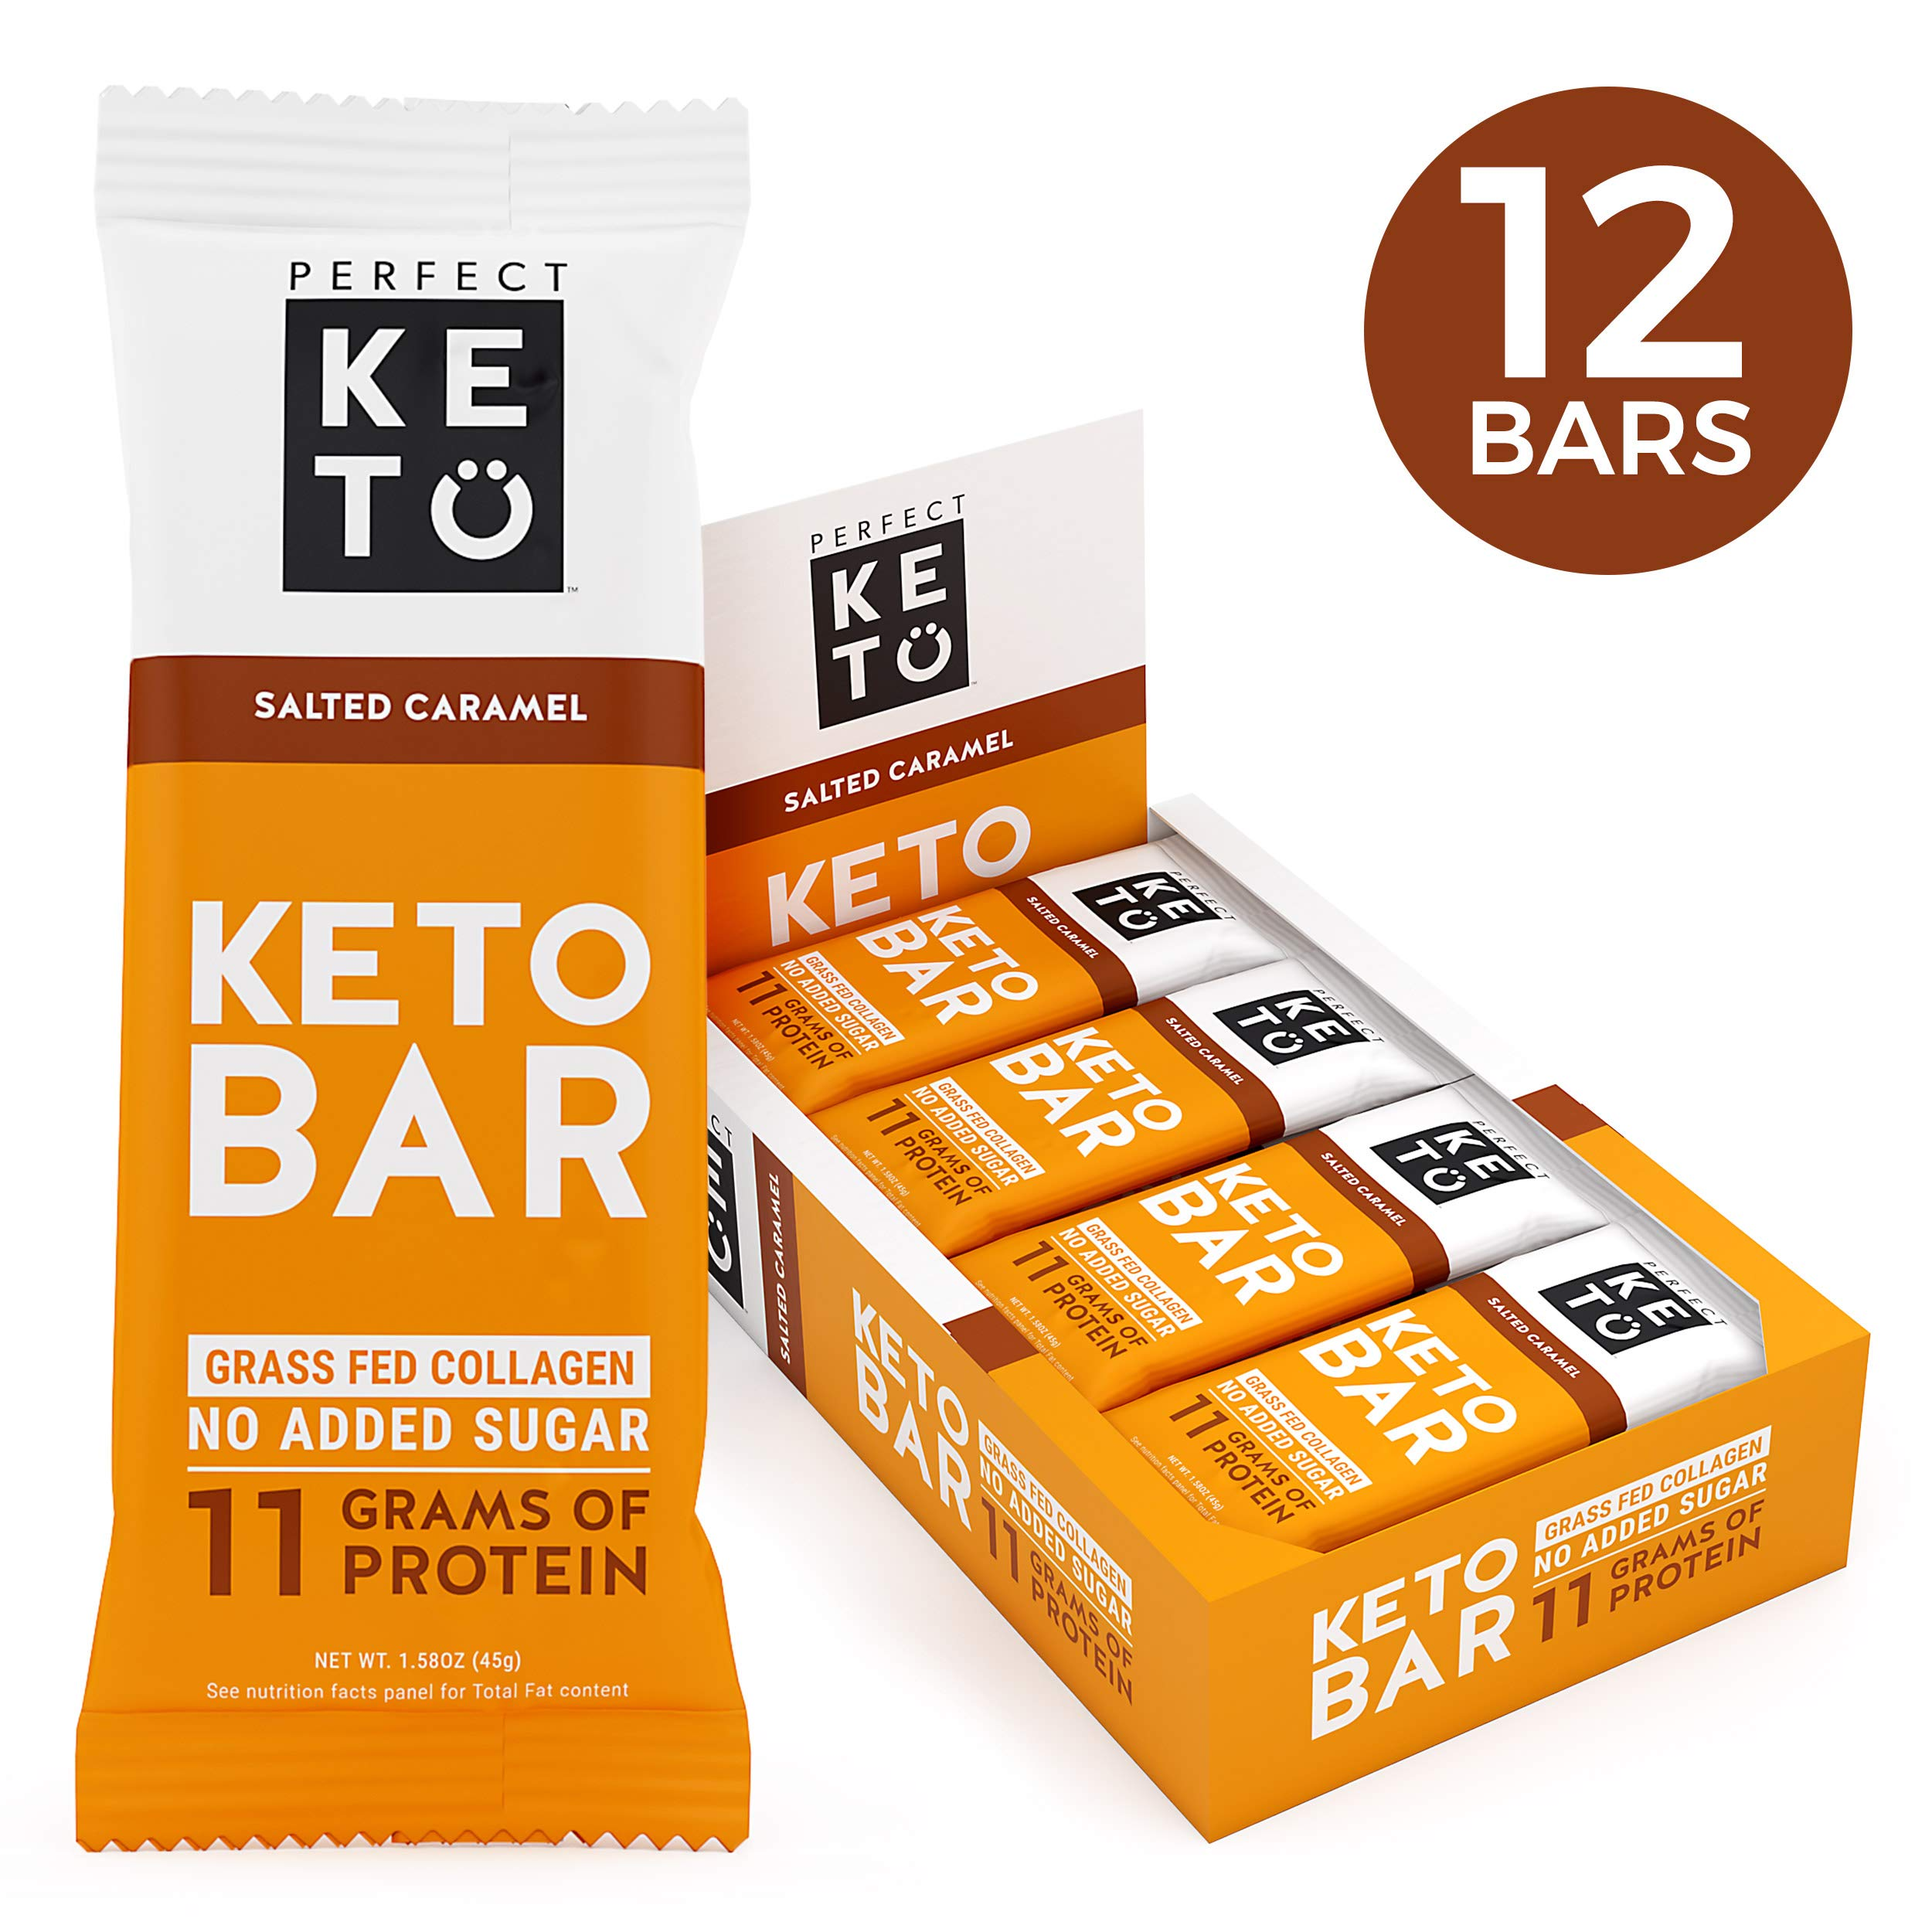 Perfect Keto Bar, Keto Snack (12 Count), No Added Sugar. 10g of Protein, Coconut Oil, and Collagen, with a Touch of Sea Salt and Stevia. (12 Bars, Salted Caramel) by Perfect Keto